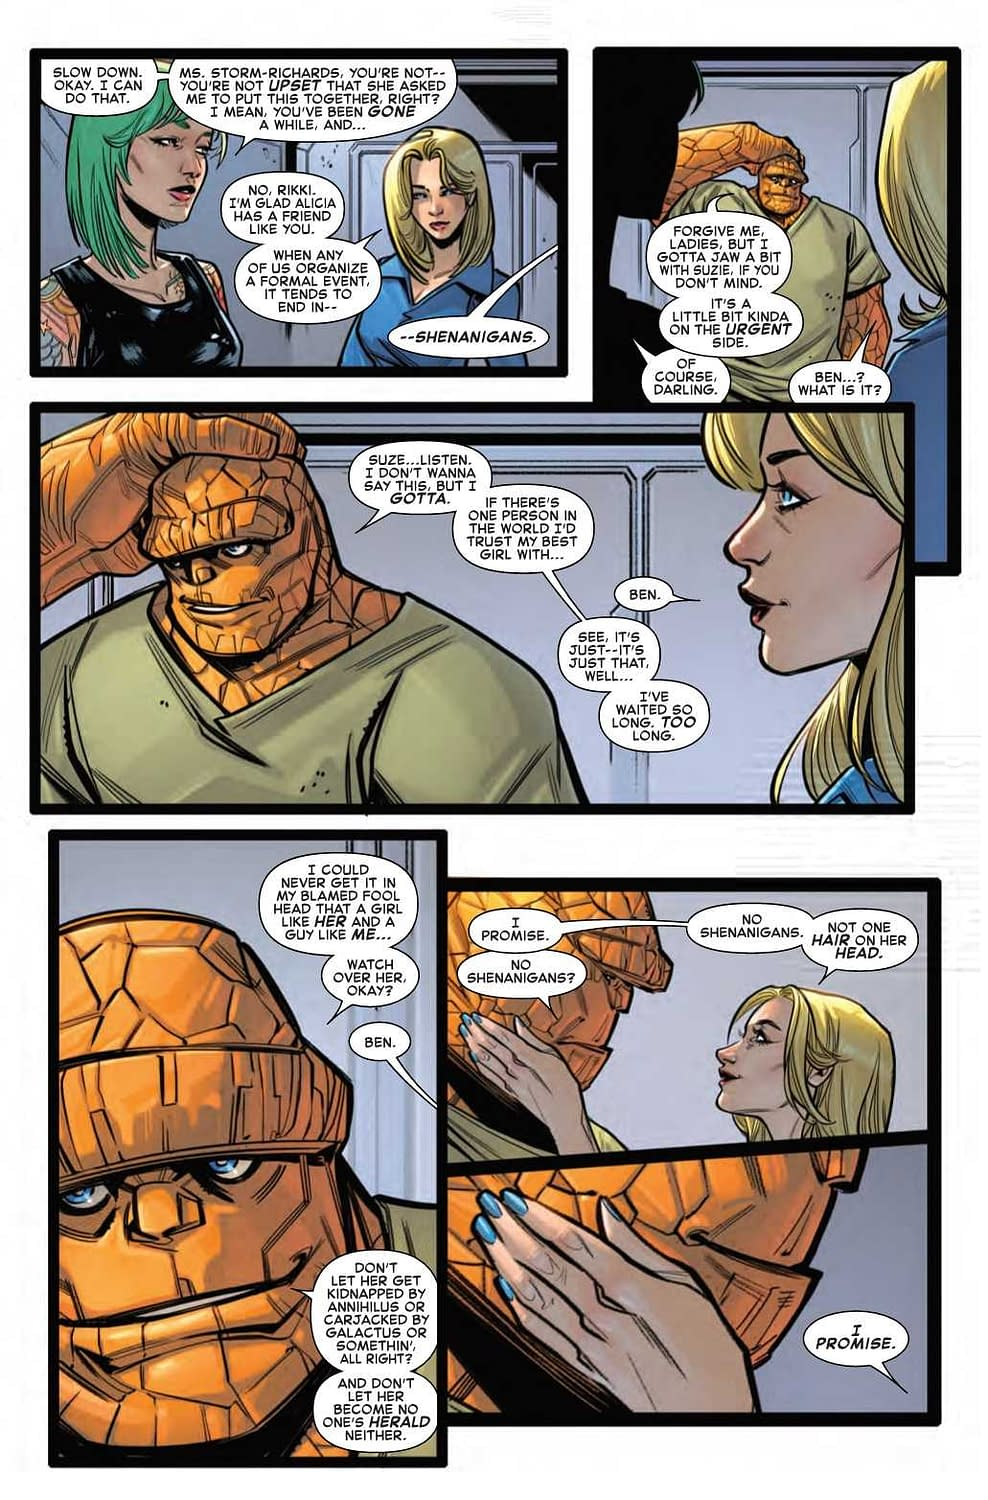 Ben Doesn't Want Any Shenanigans at Alicia's Bachelorette Party in Next Week's Fantastic Four Wedding Issue